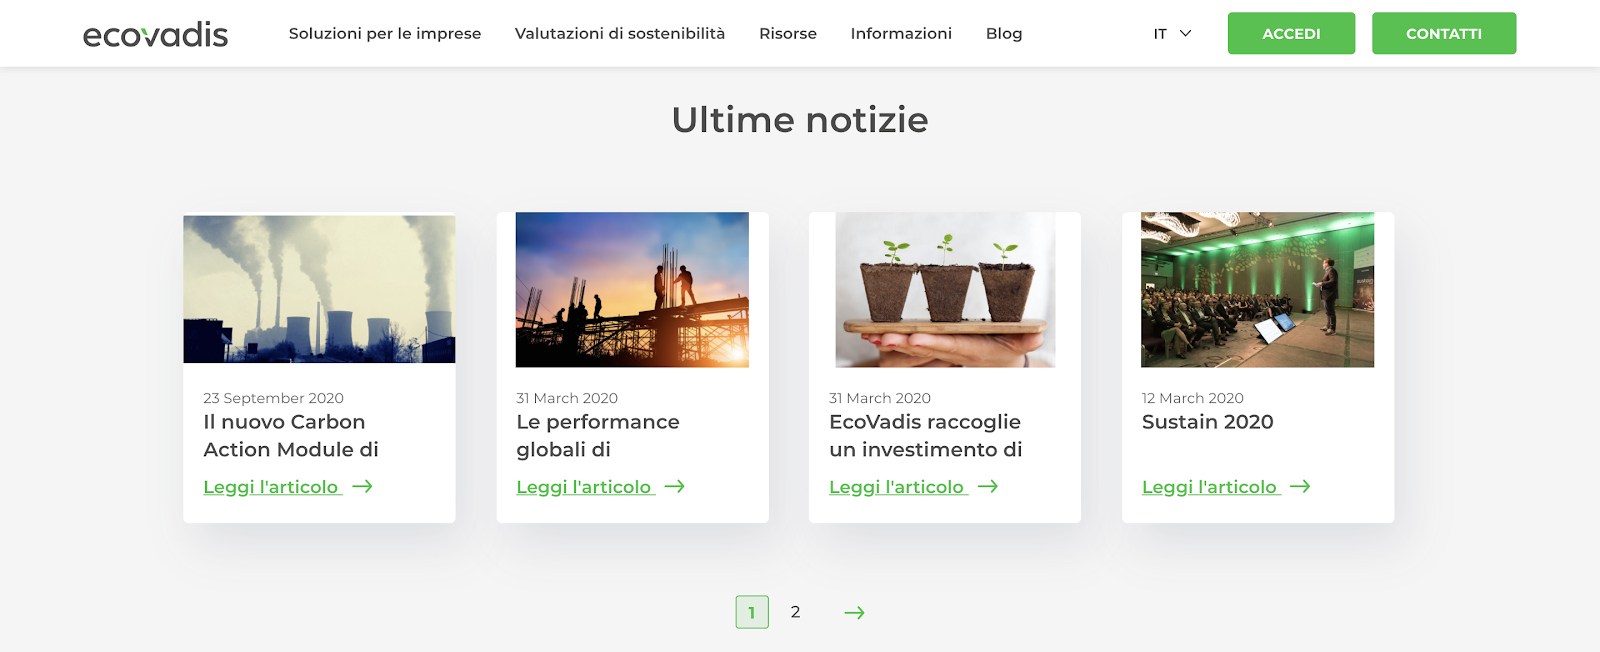 Multilingual Website Example: EcoVadis Latest News section in Italian